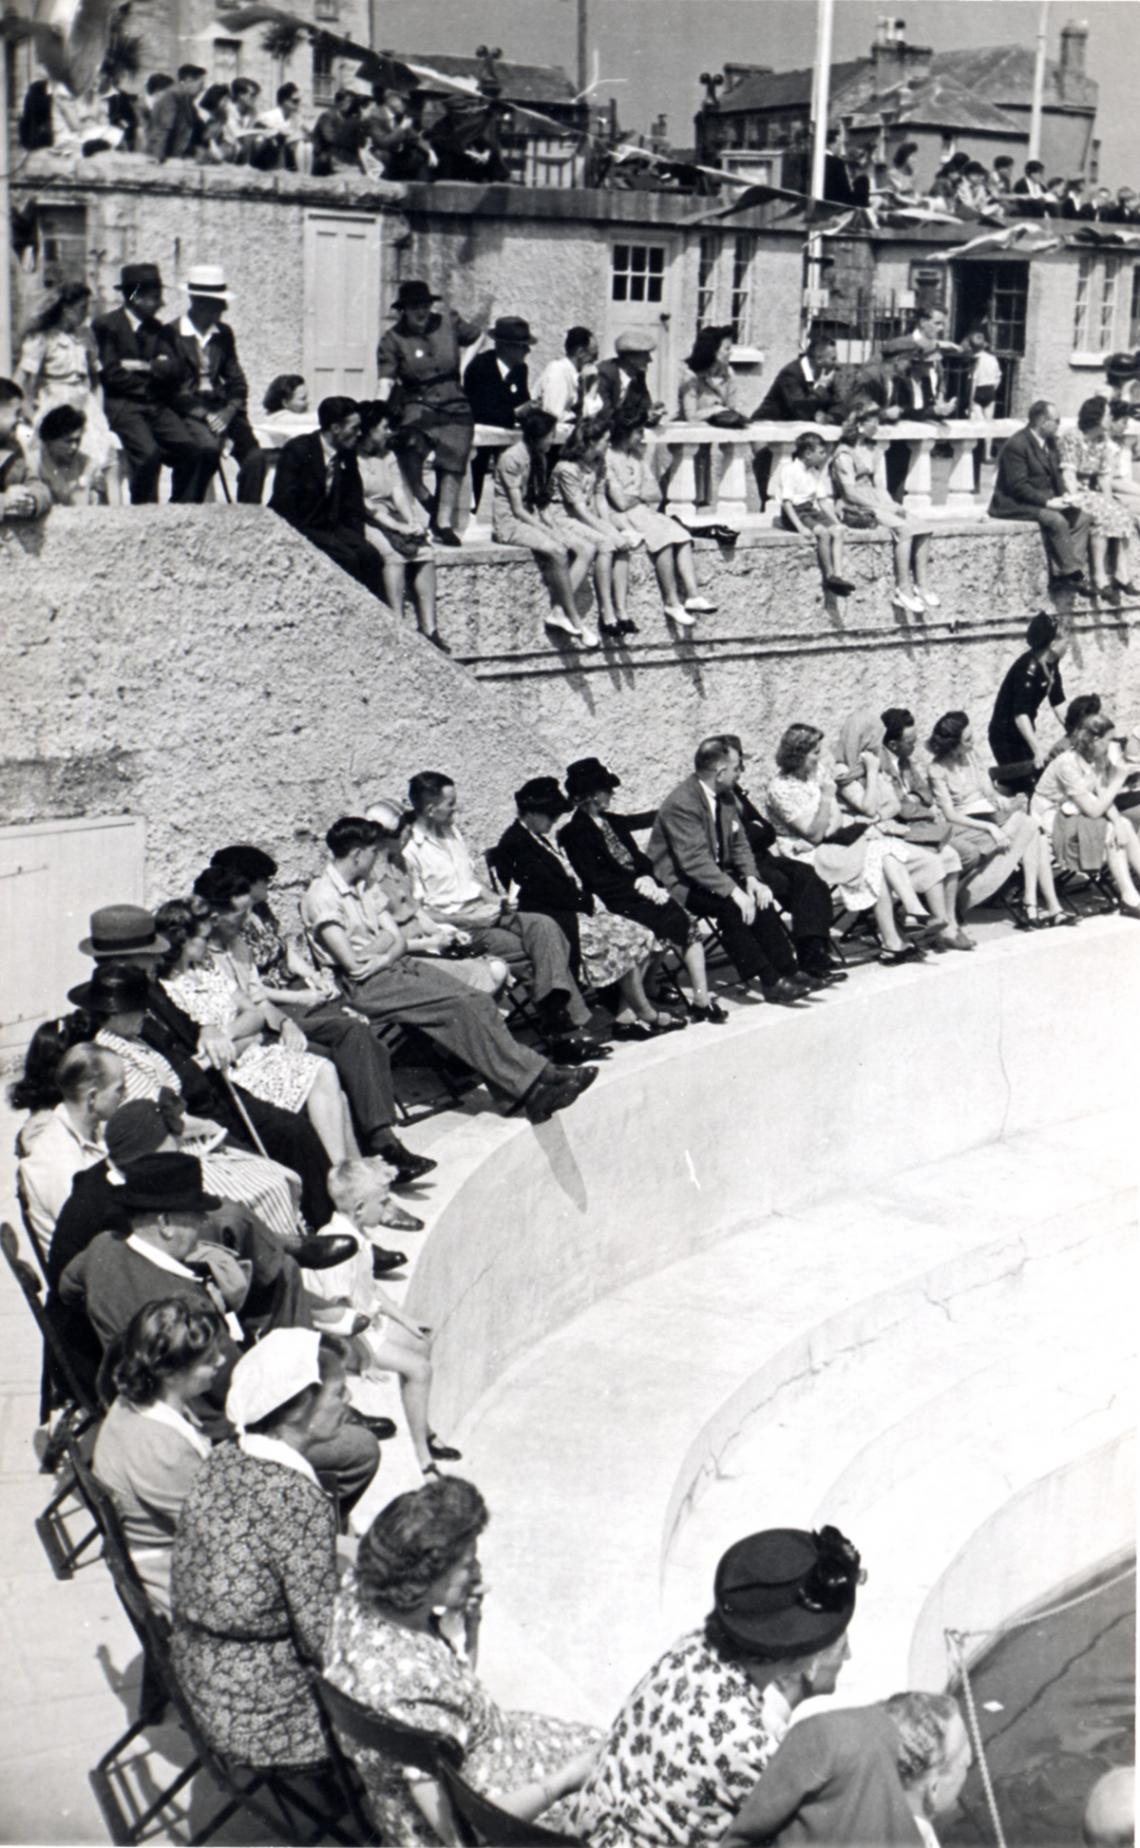 Crowds on the terrace